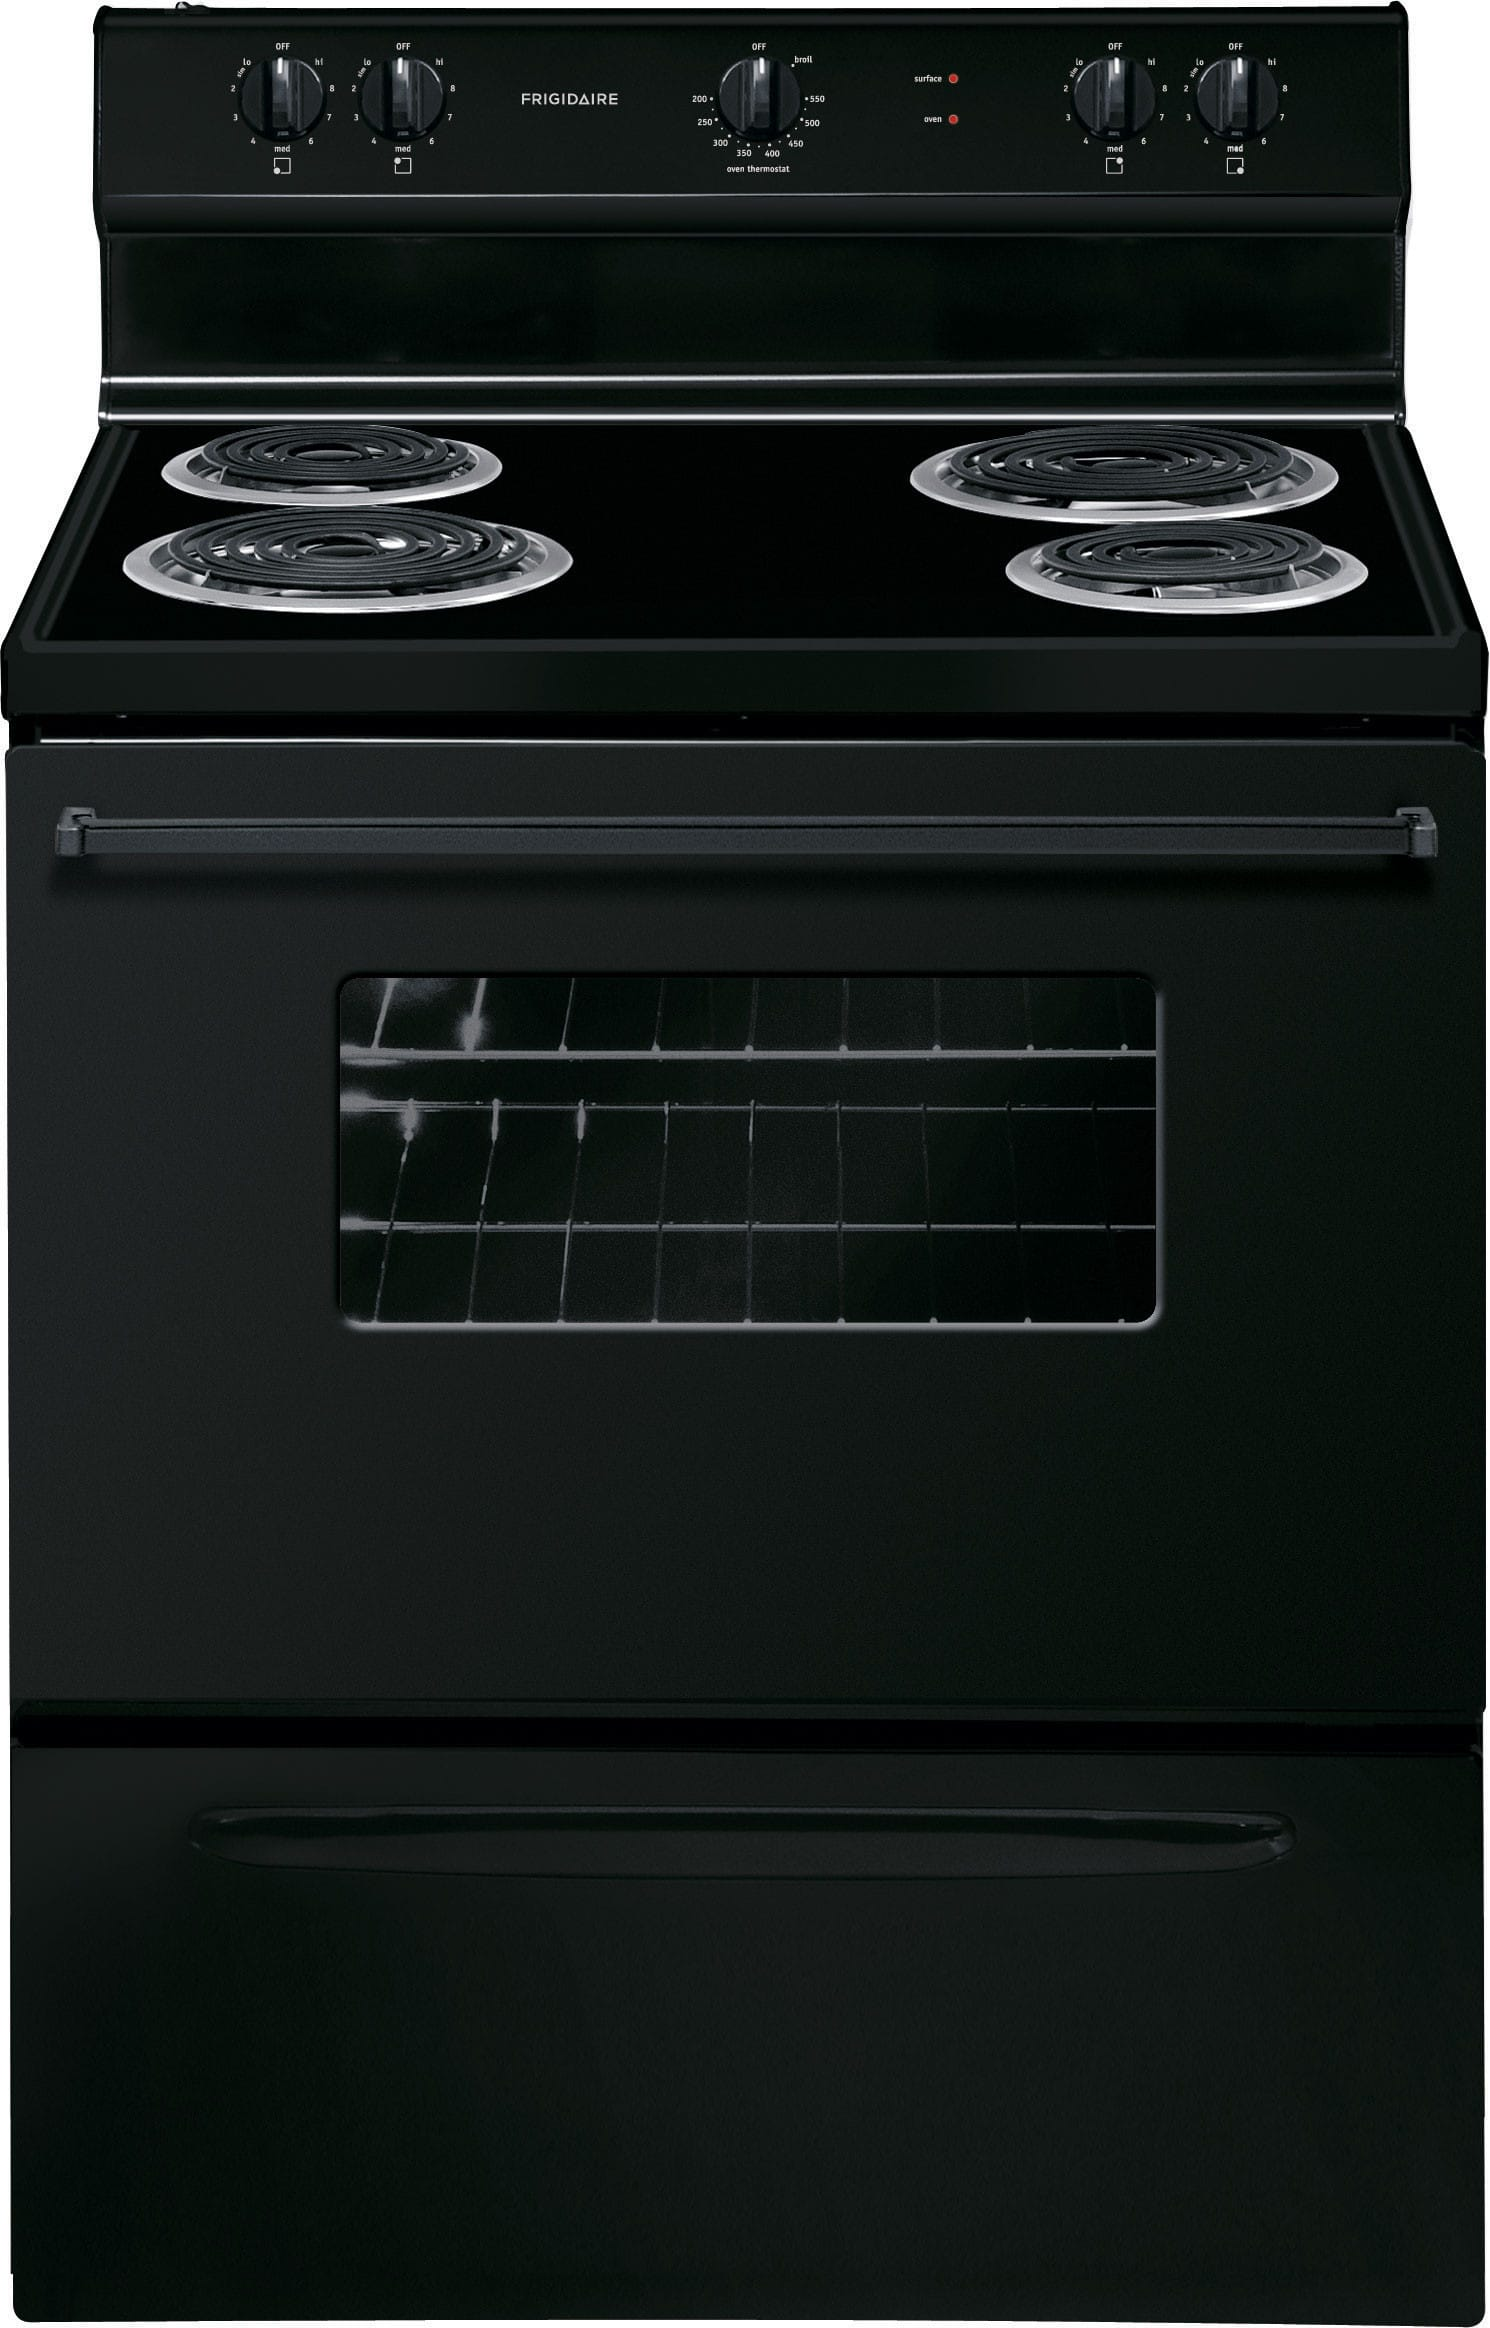 Frigidaire Ffef3005mb 30 Inch Freestanding Electric Range